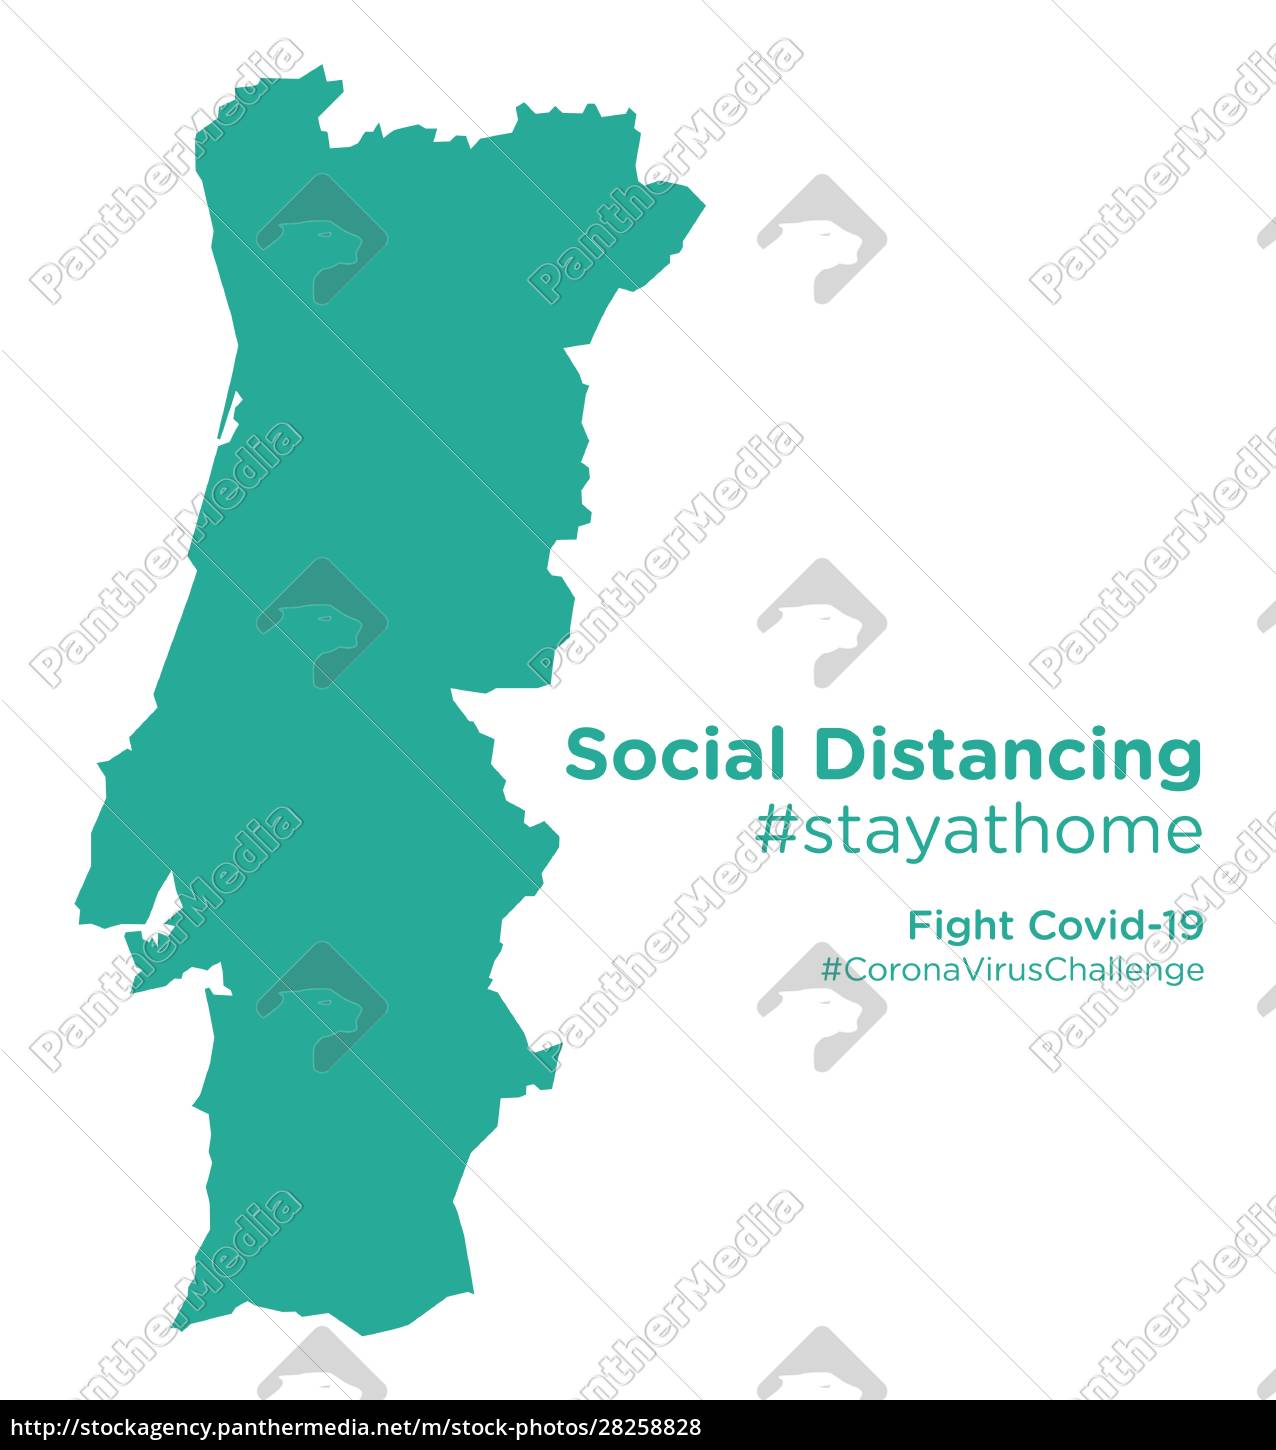 portugal, map, with, social, distancing, stayathome - 28258828